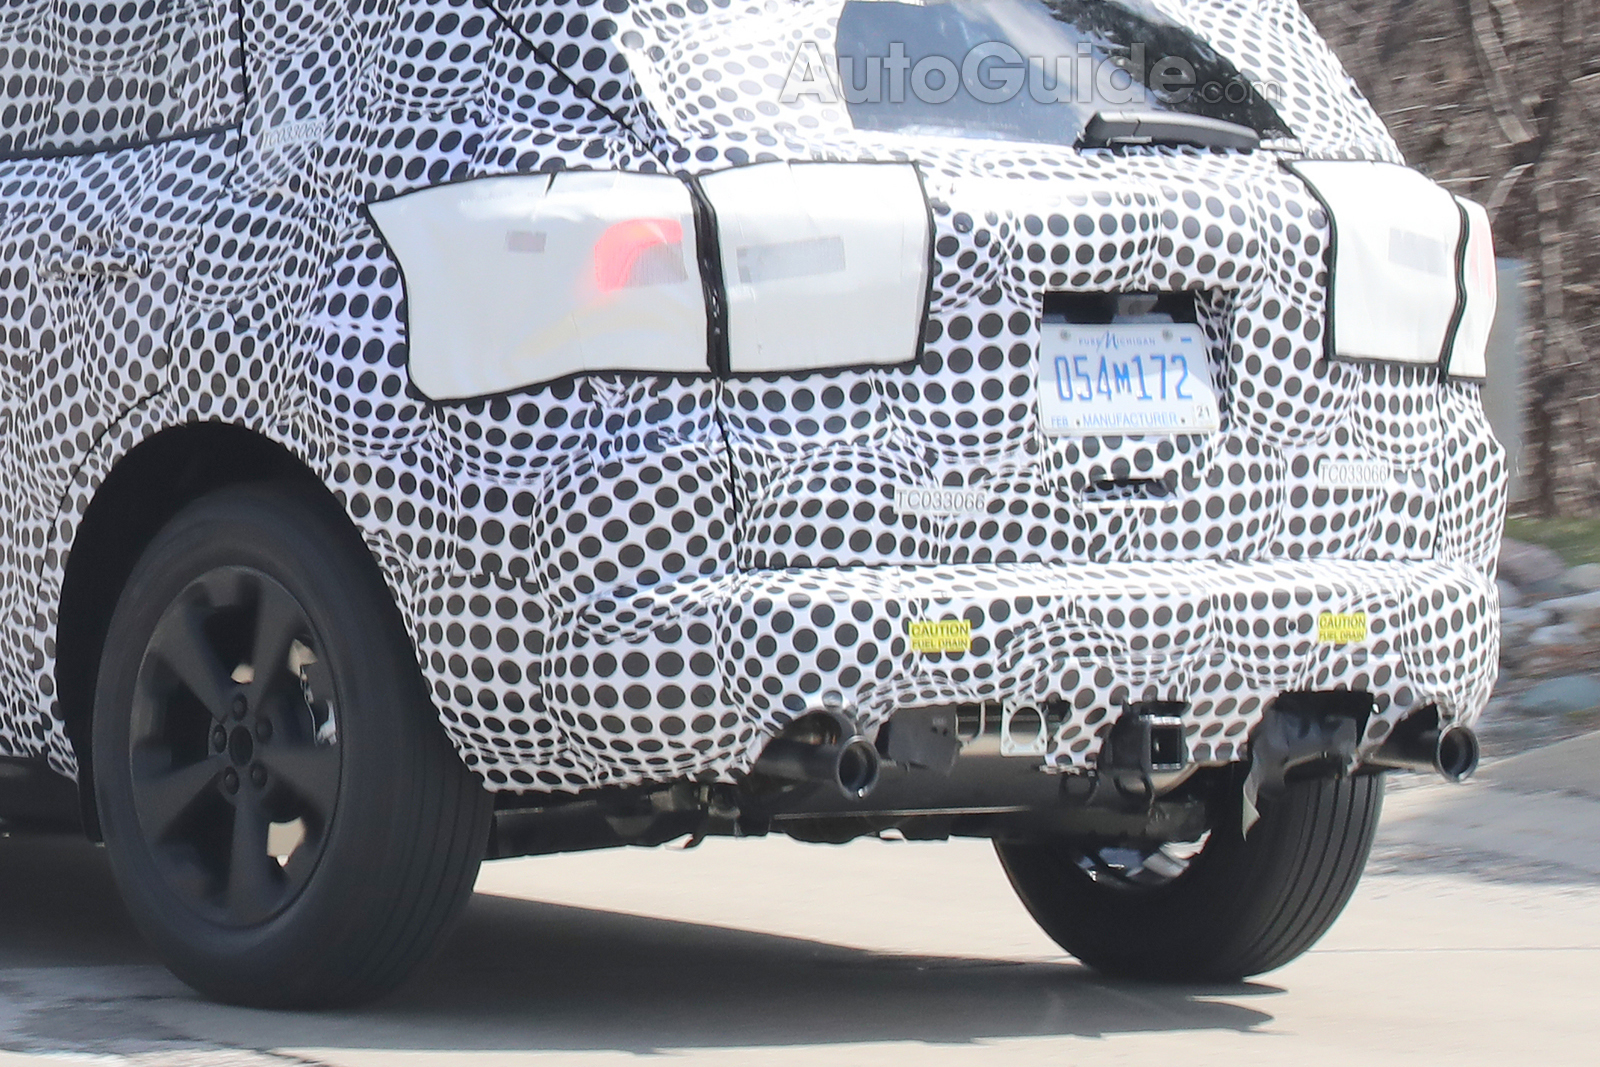 2020 Ford Escape Spied Looking Like The New Focus Autoguide Com News